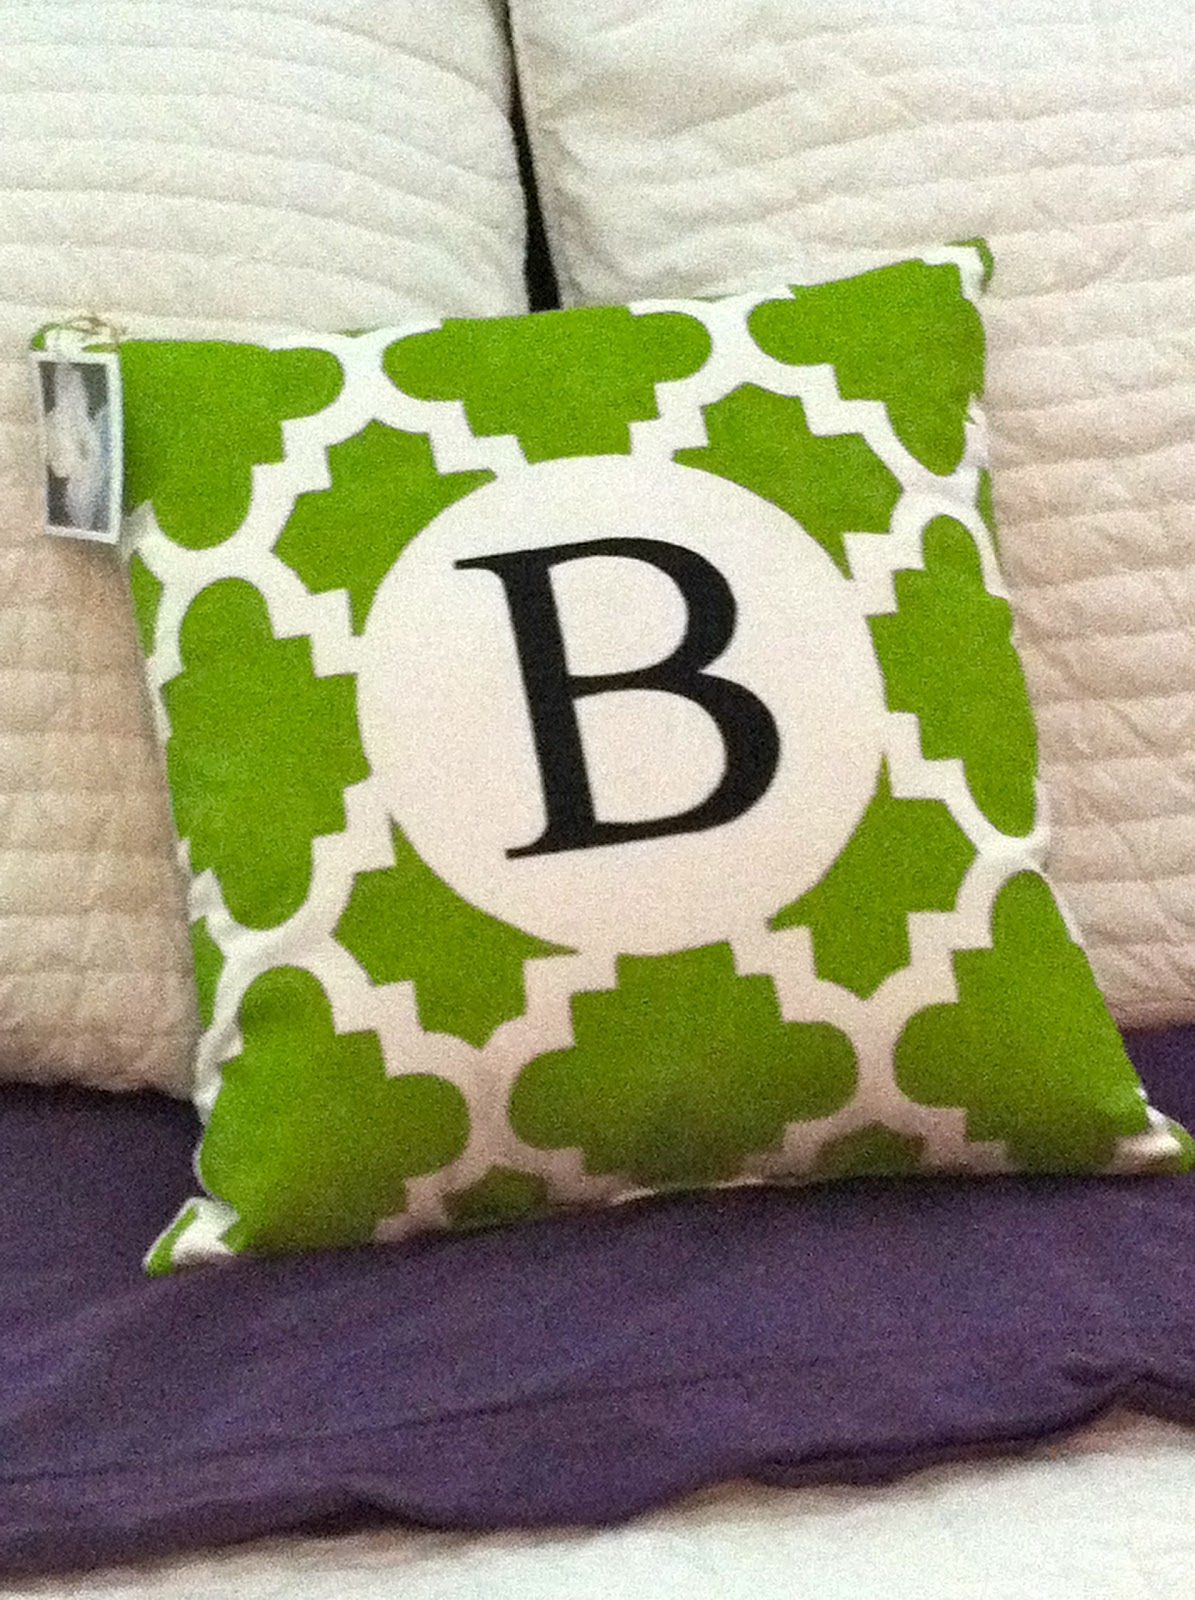 Graceadkinsdesigns small hand painted green lattice pillow for Hand painted pillows